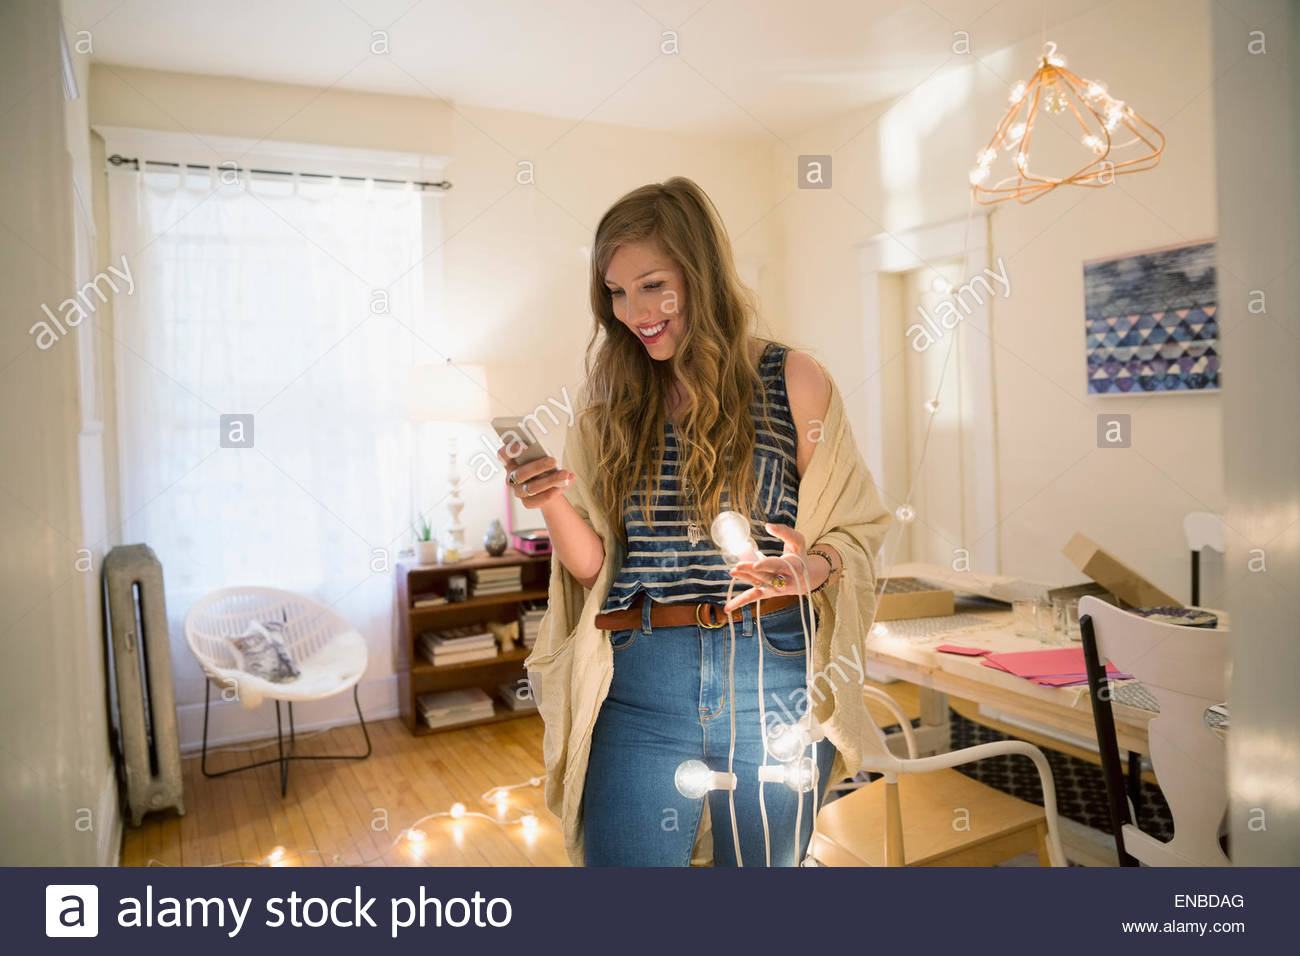 Woman with string lights texting with cell phone Stock Photo